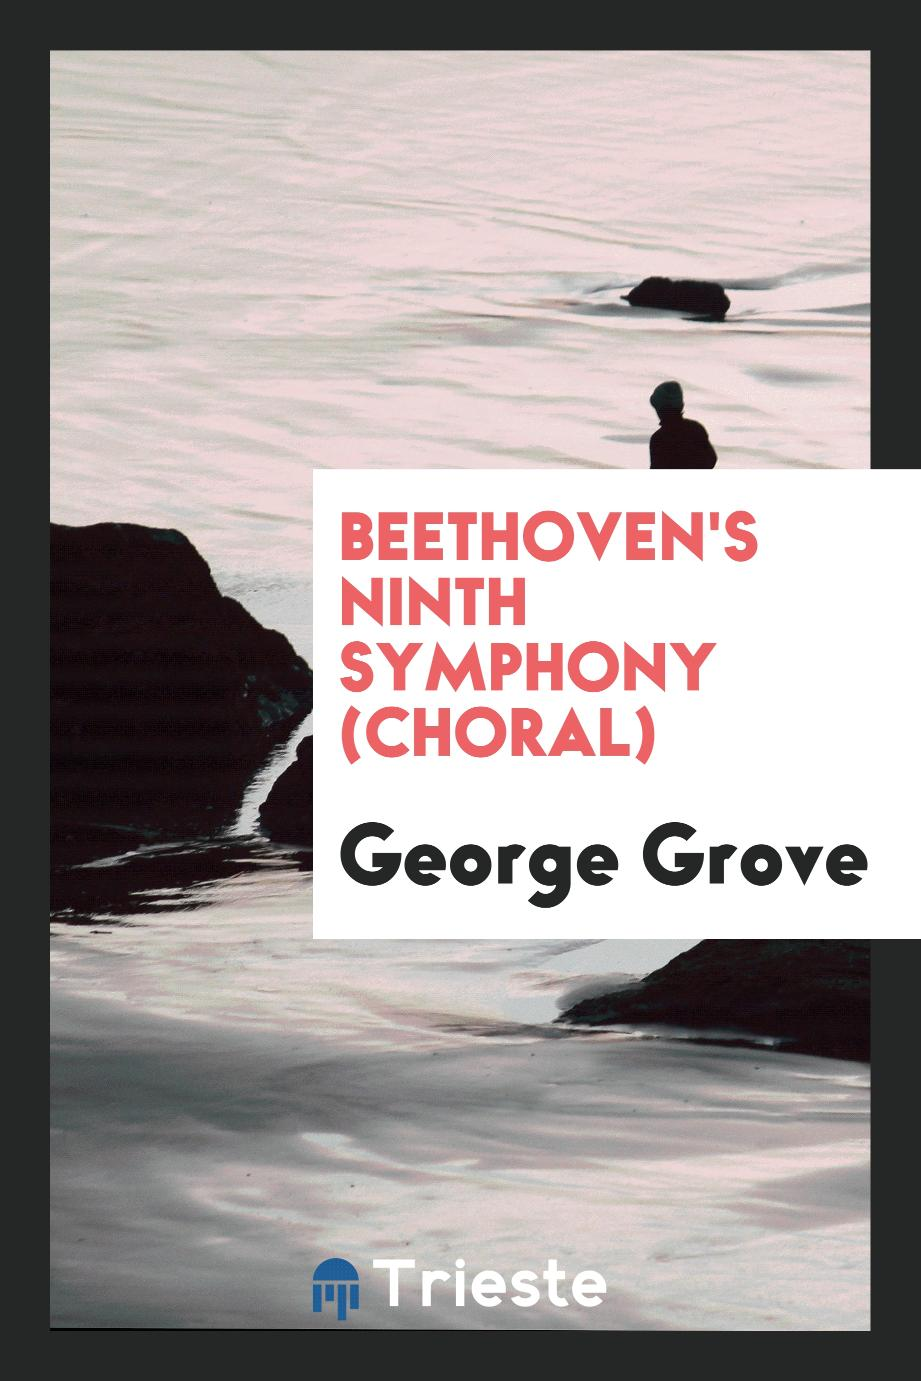 Beethoven's Ninth Symphony (choral)